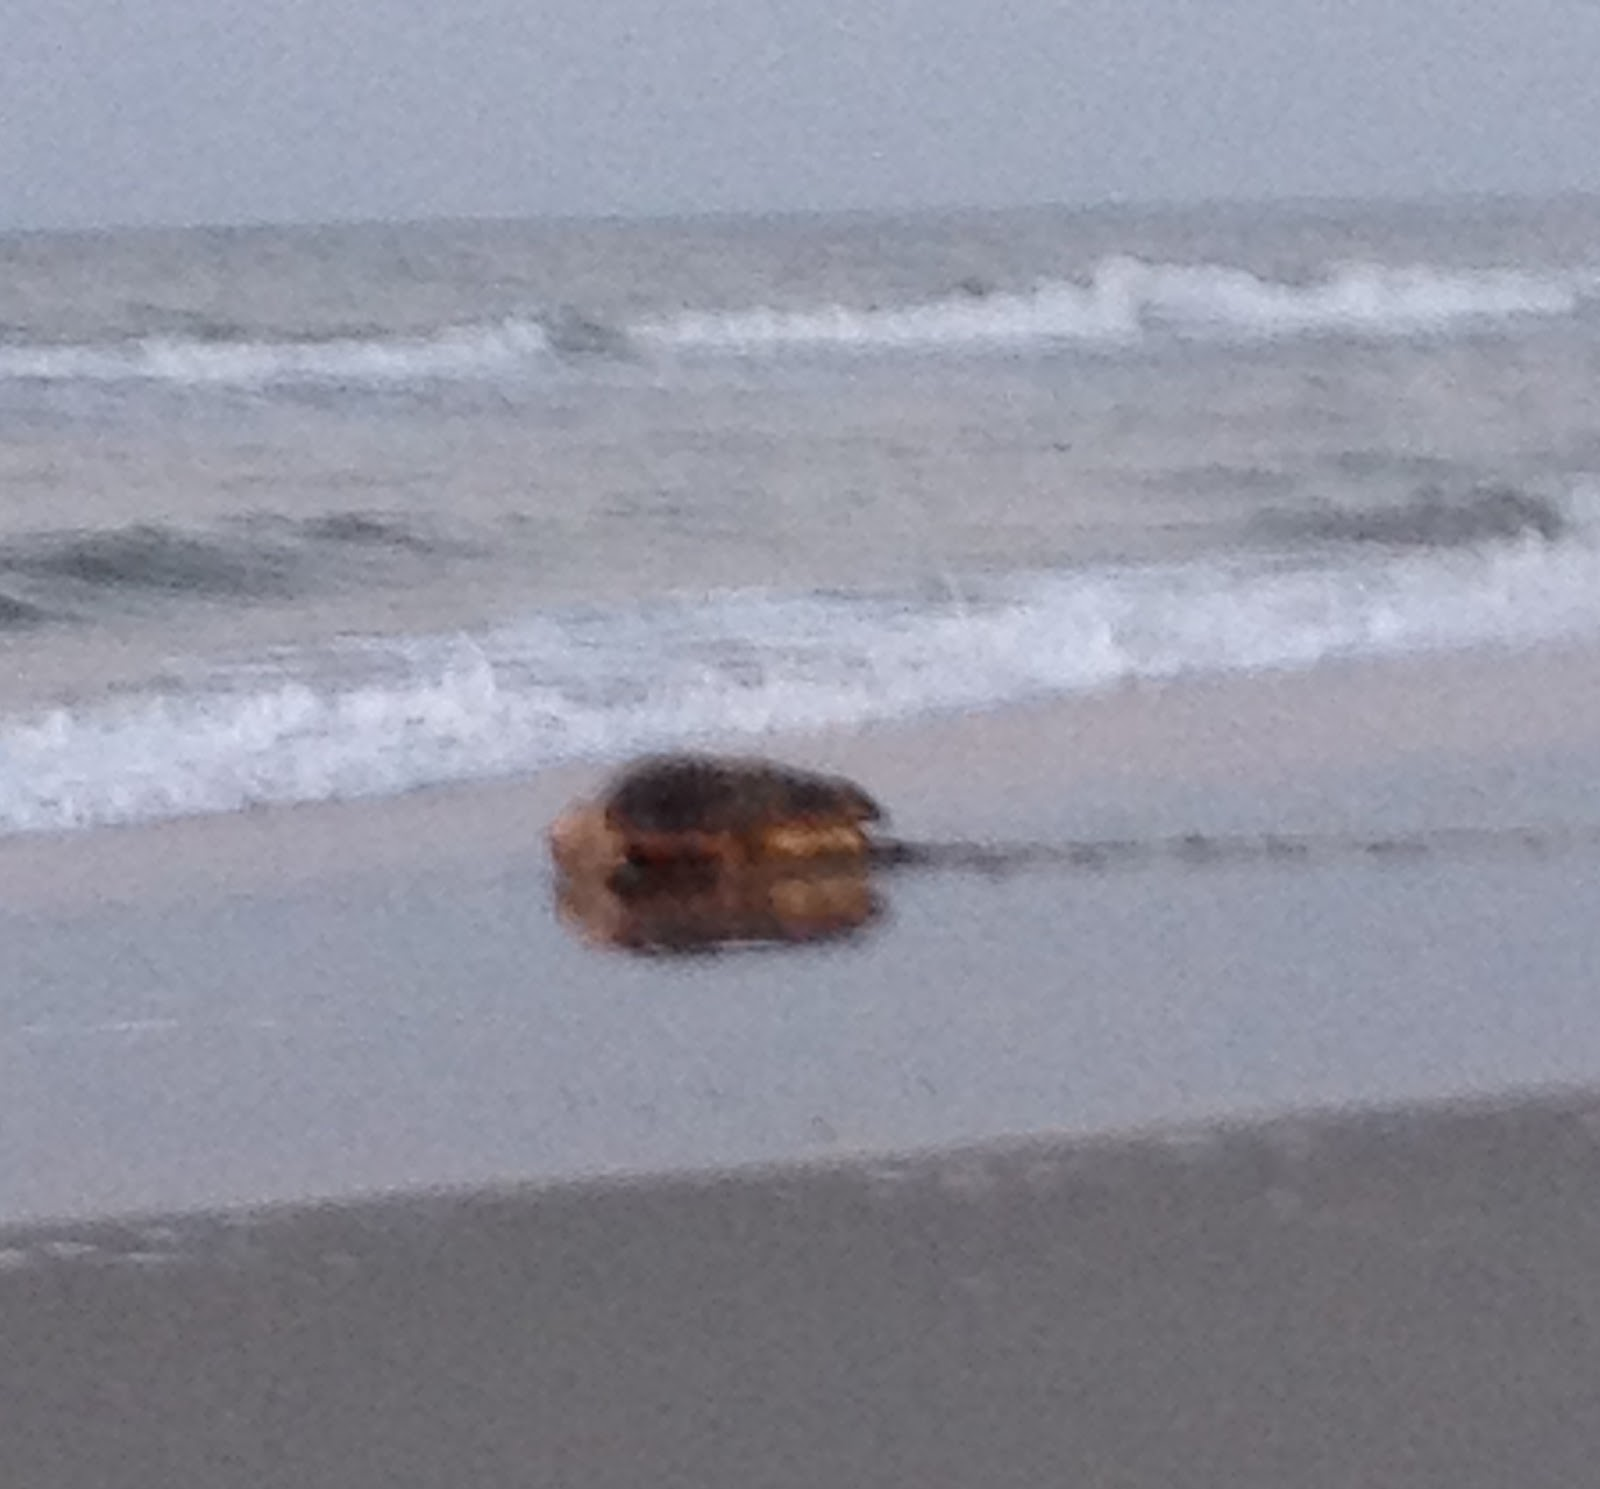 North myrtle beach sea turtle patrol september 2012 they quietly observed her as the turtle sat in a tide pool she then raised her head looked around and crawled to the ocean nvjuhfo Gallery